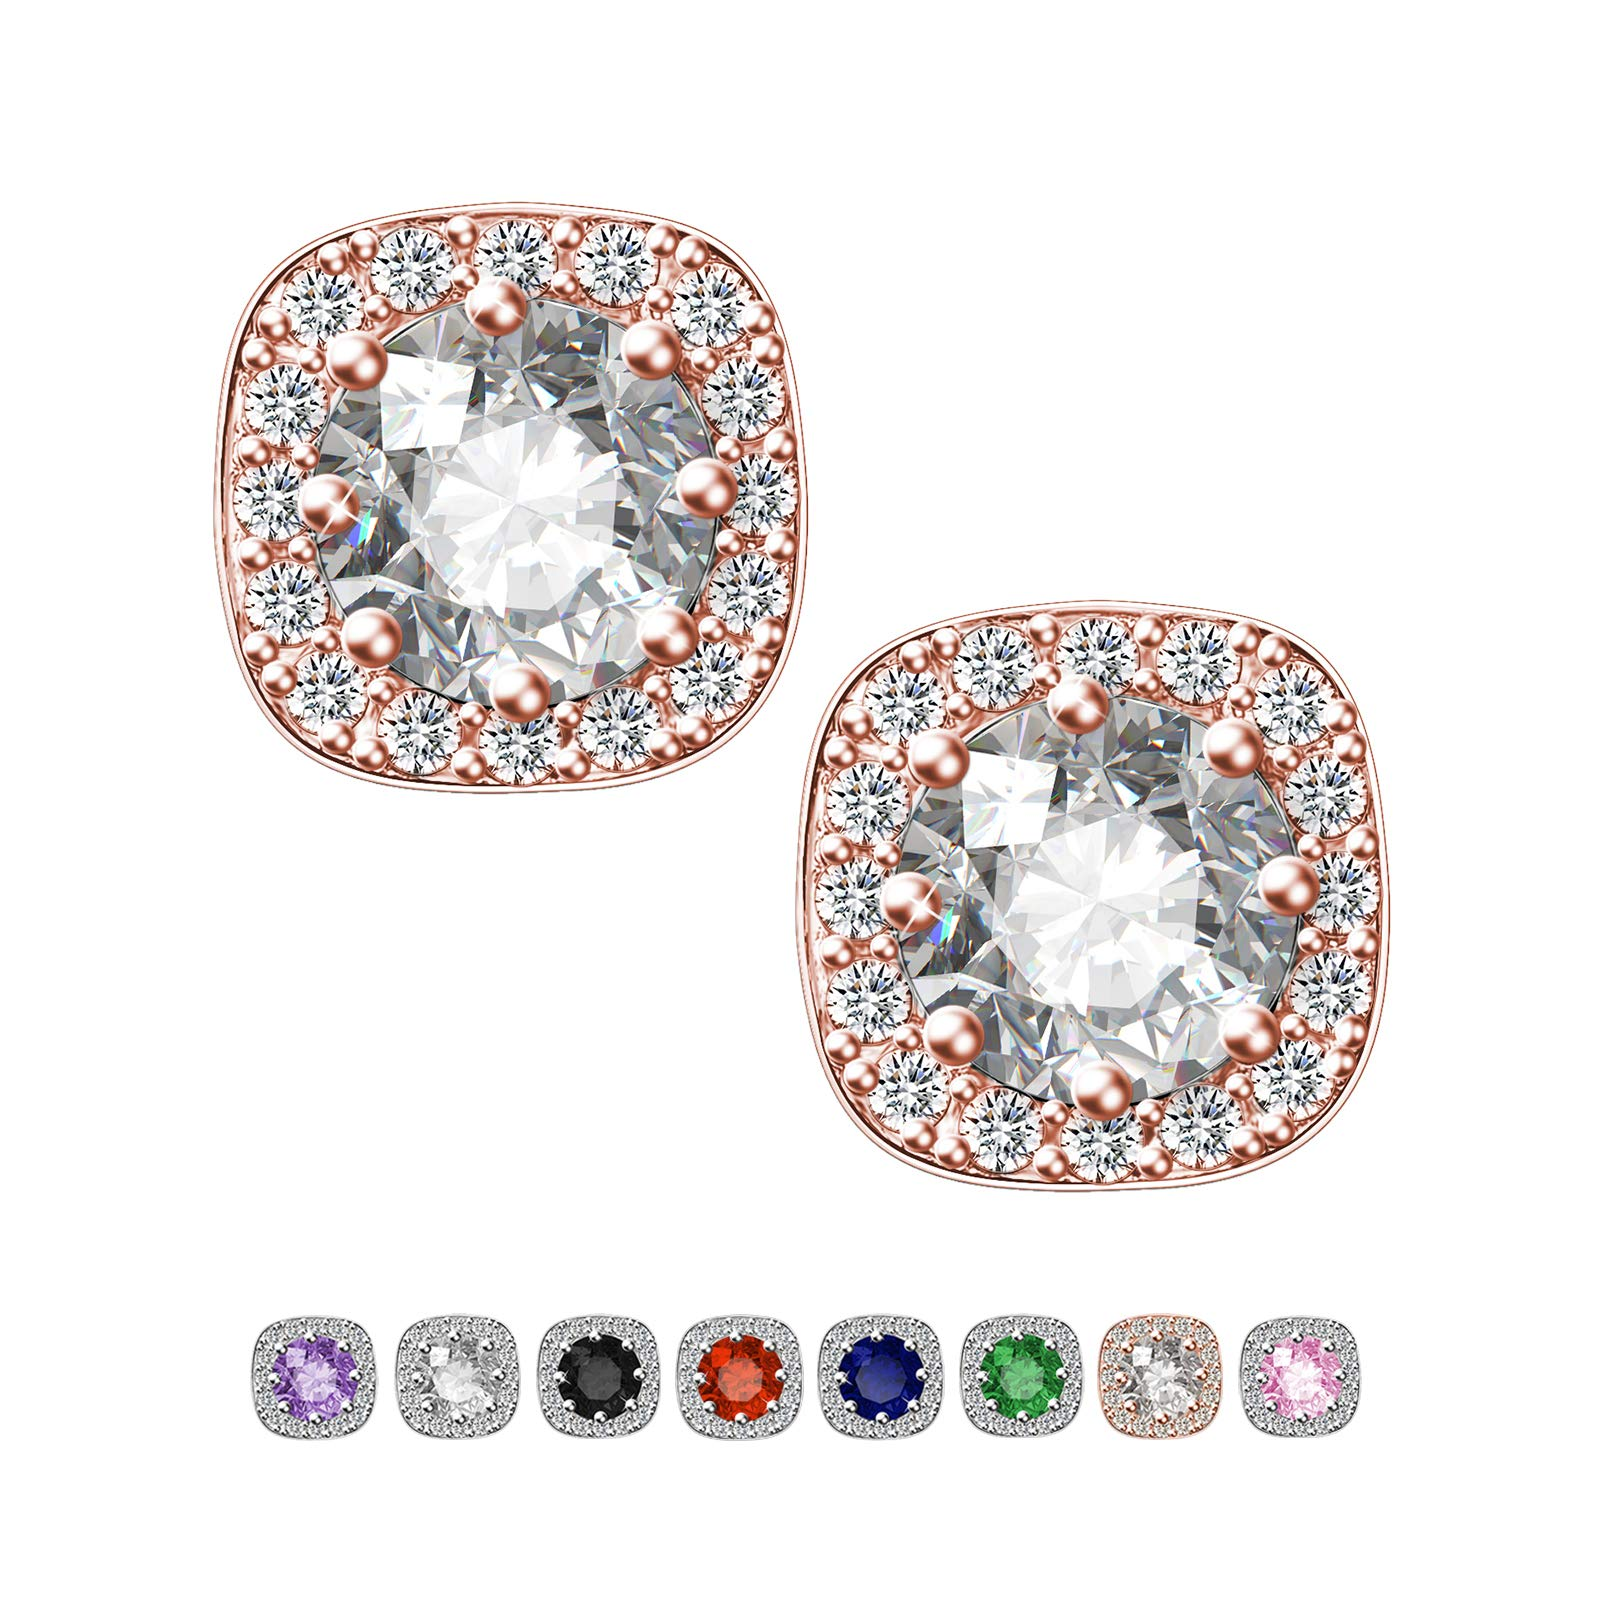 SWEETV Rose Gold Bridesmaid Earrings Studs for Women Fashion- Halo Cubic Zirconia Stud Earrings for Wedding, Bridal,Prom,Jewelry Gifts